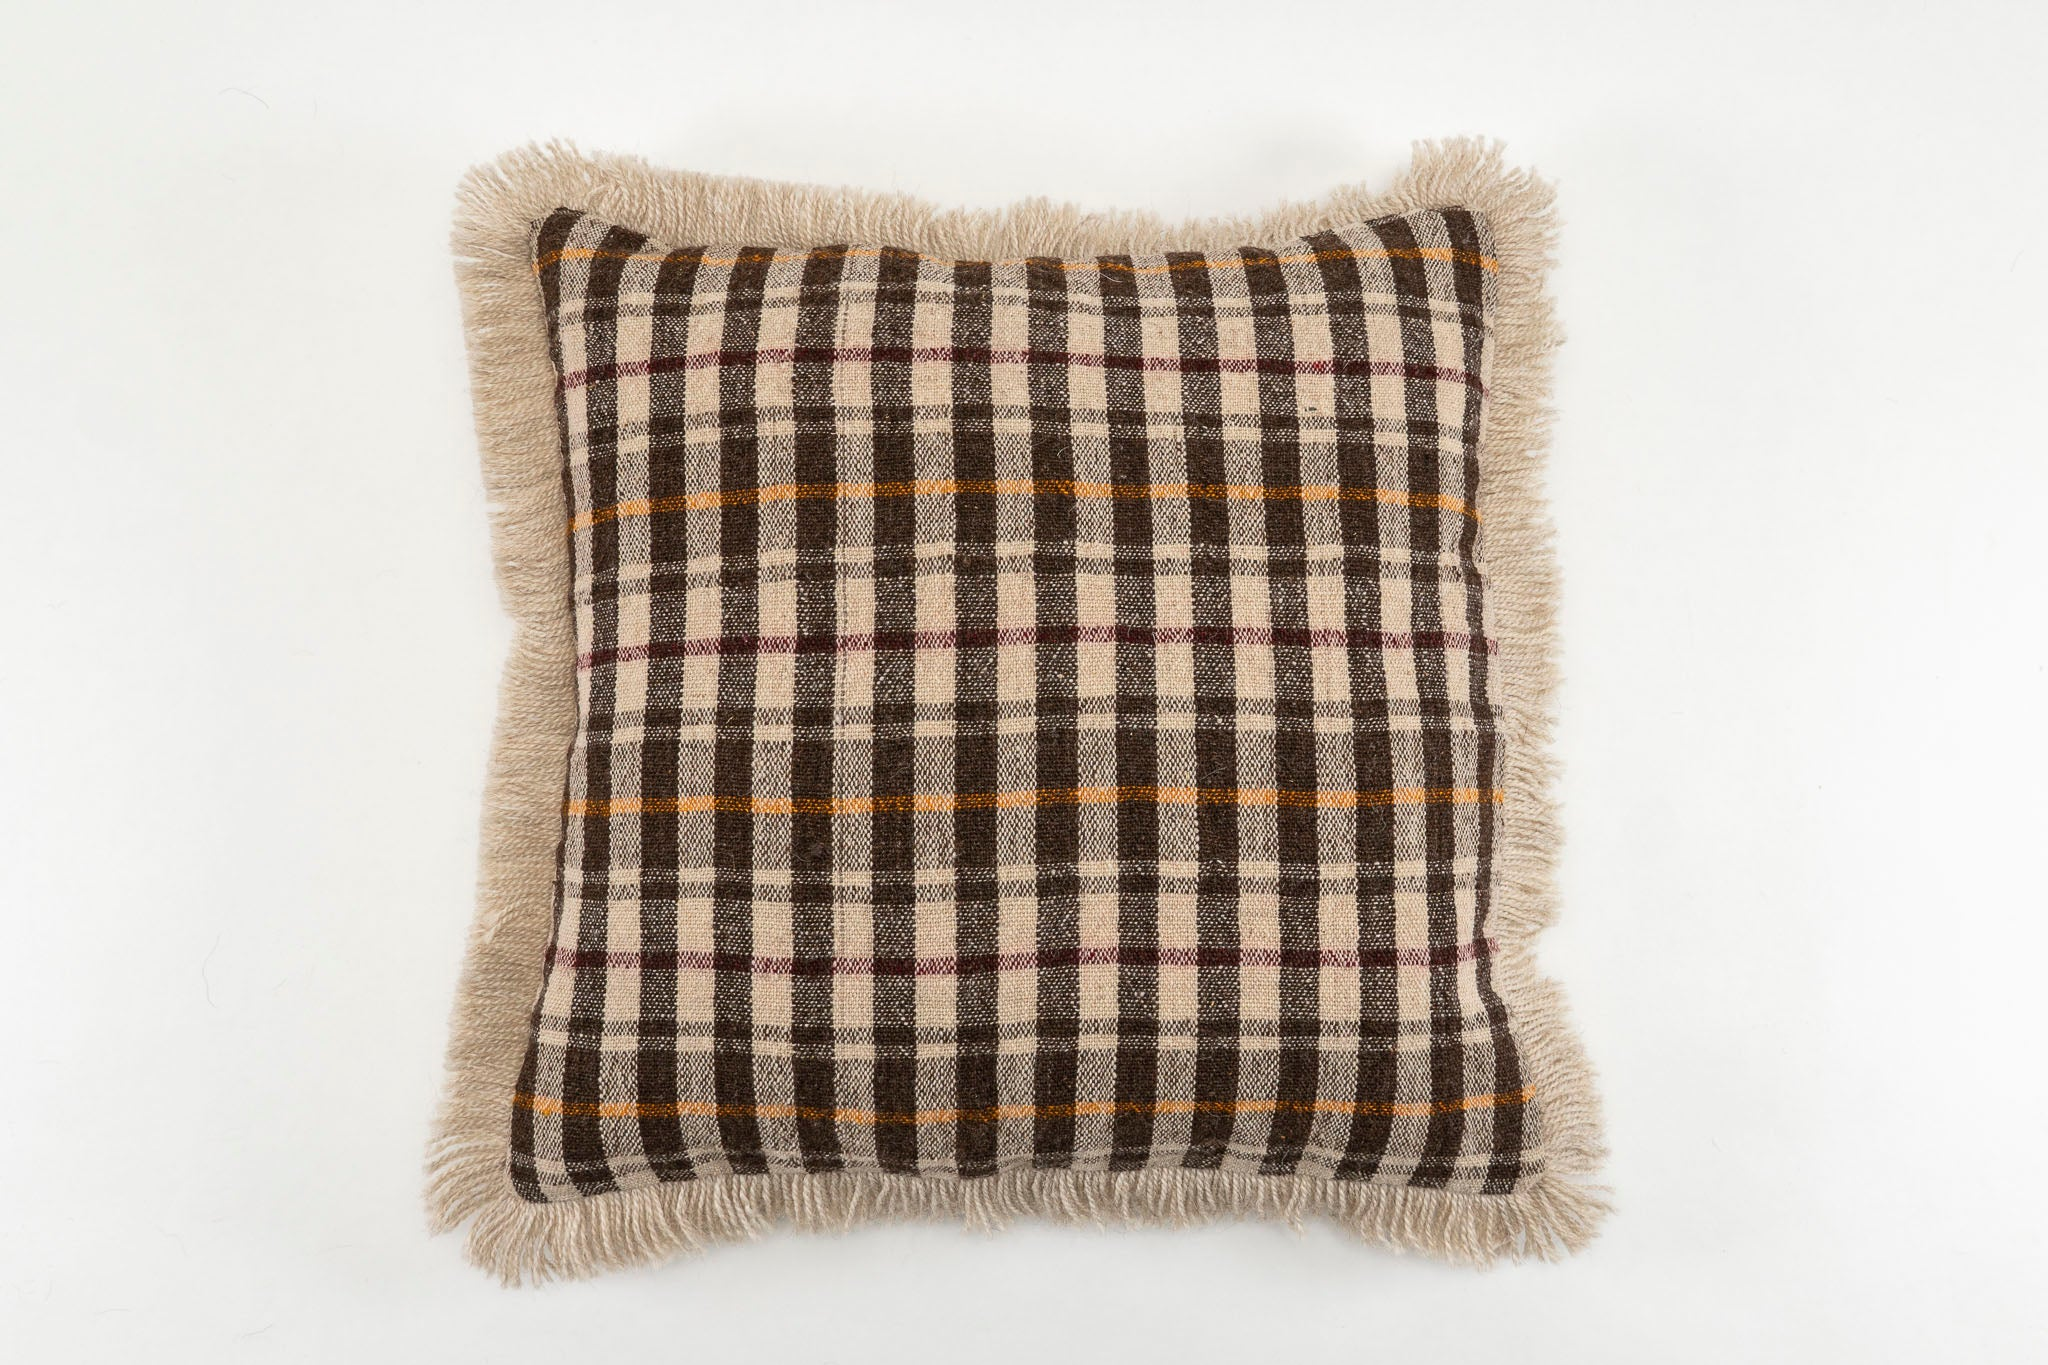 Pillow: Handwoven antique Bulgarian woolen textile